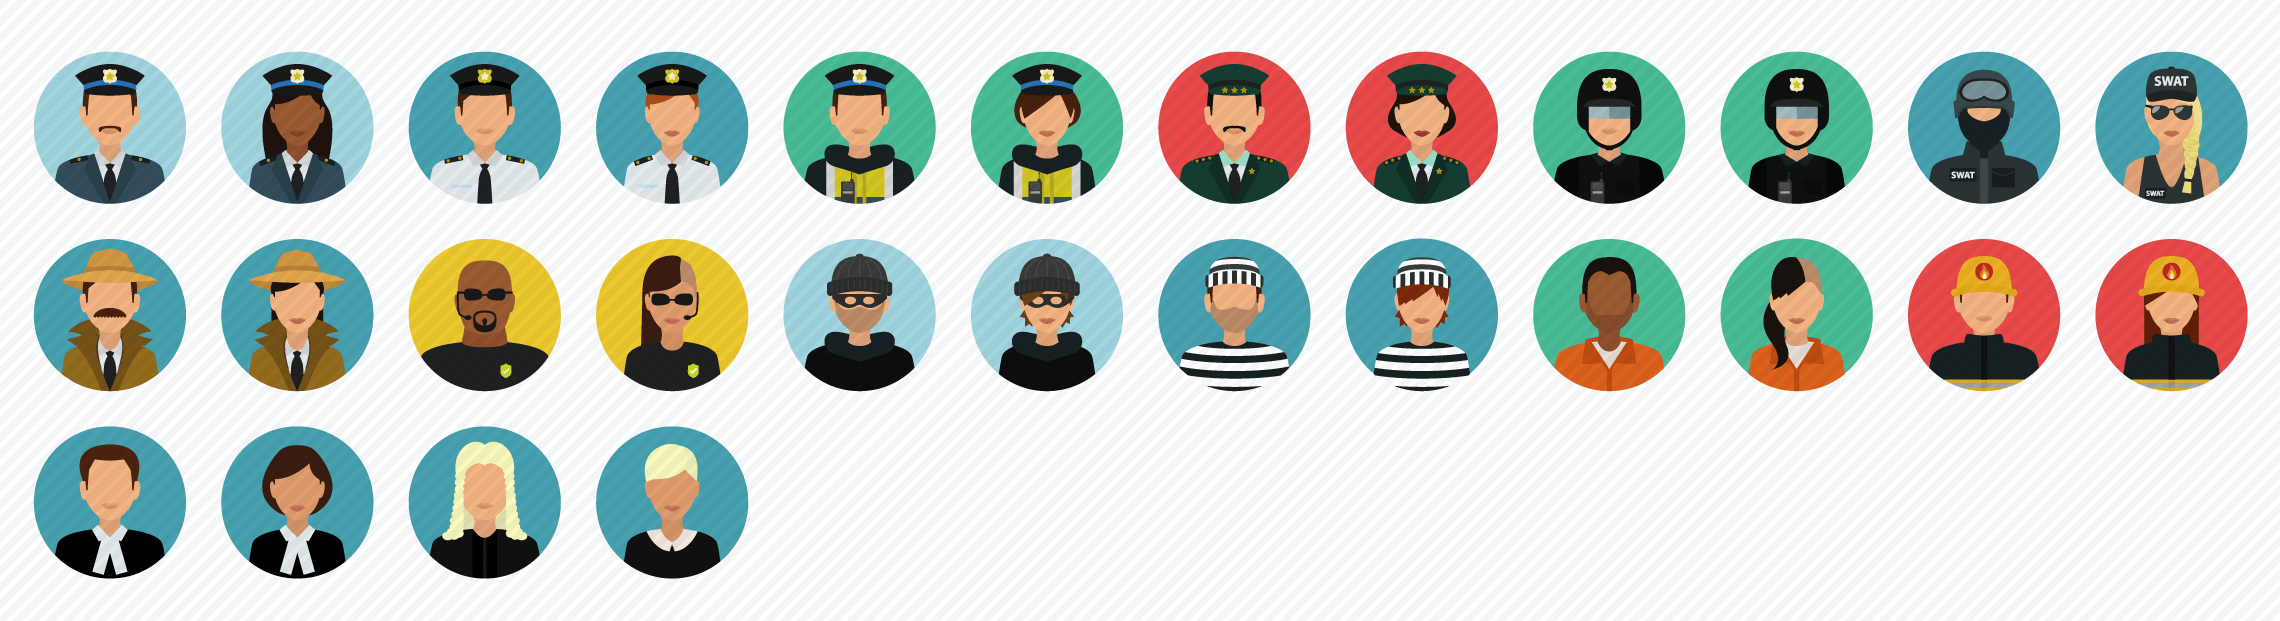 People_Crime_Protection flat icons